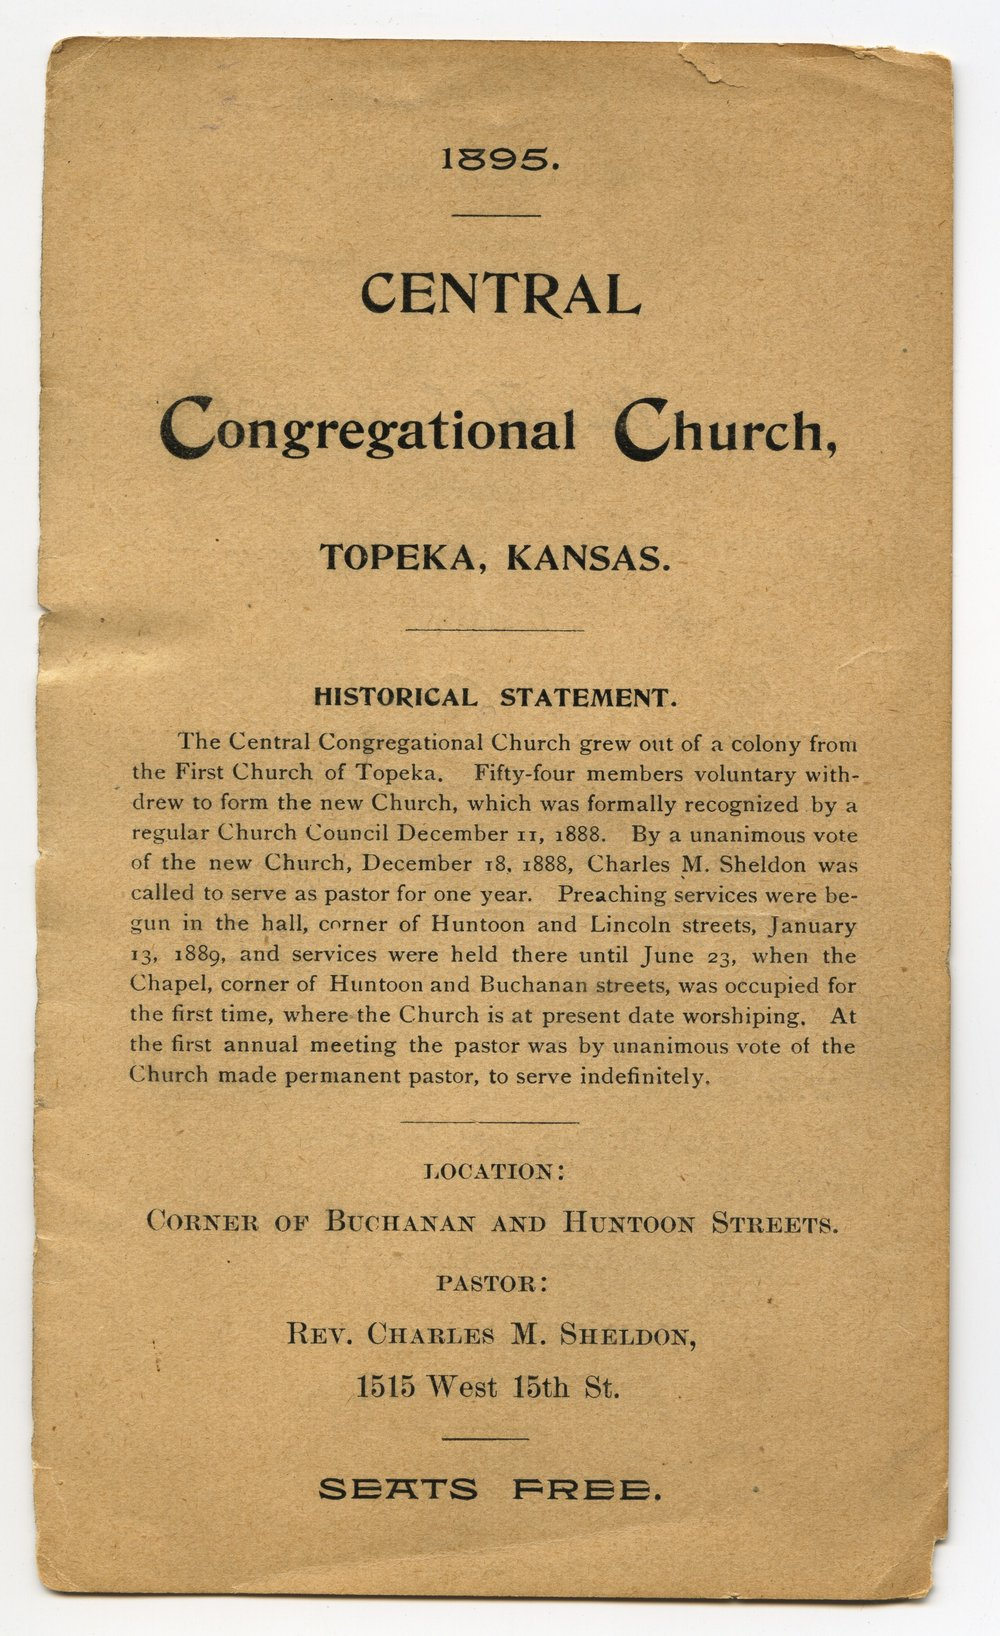 Central Congregational Church directory of members - 1 [1895 Directory]